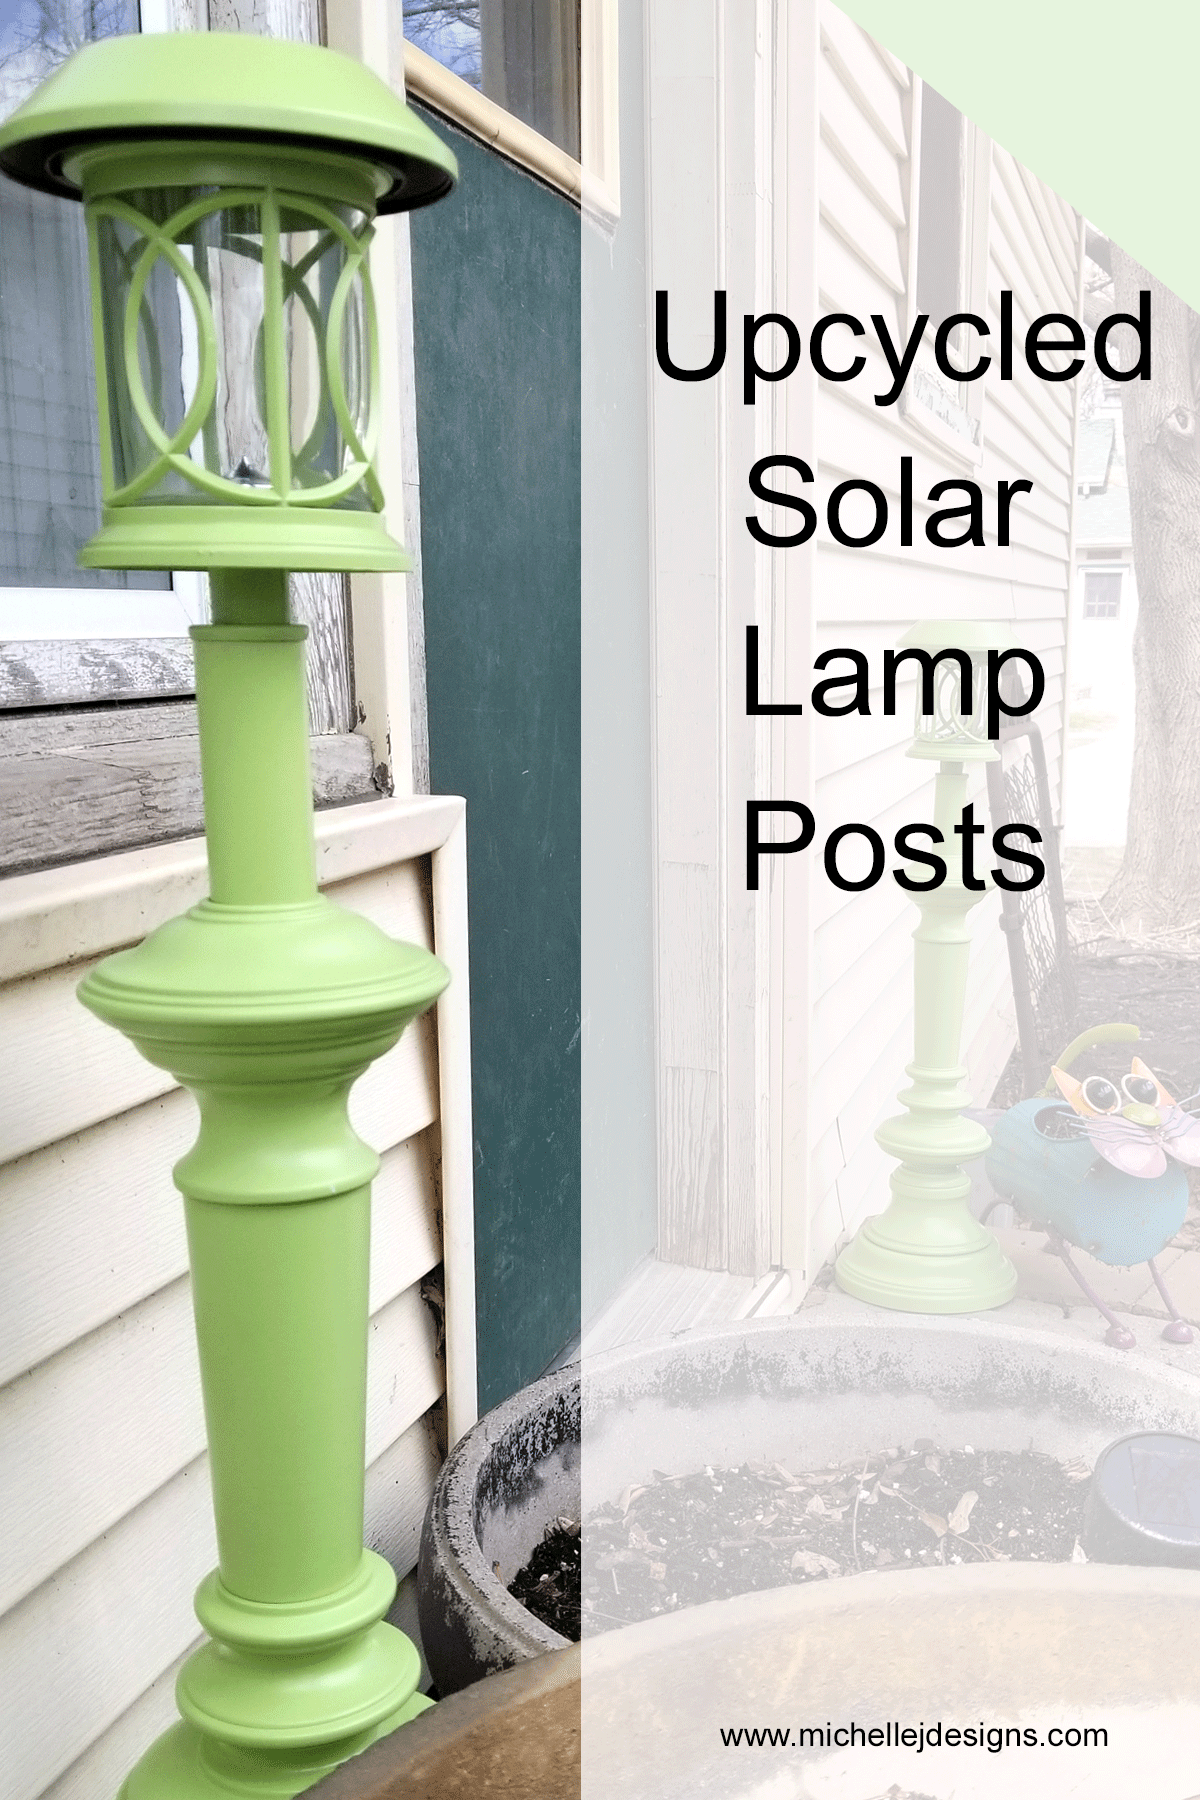 Solar lamp posts on either side of the back door.